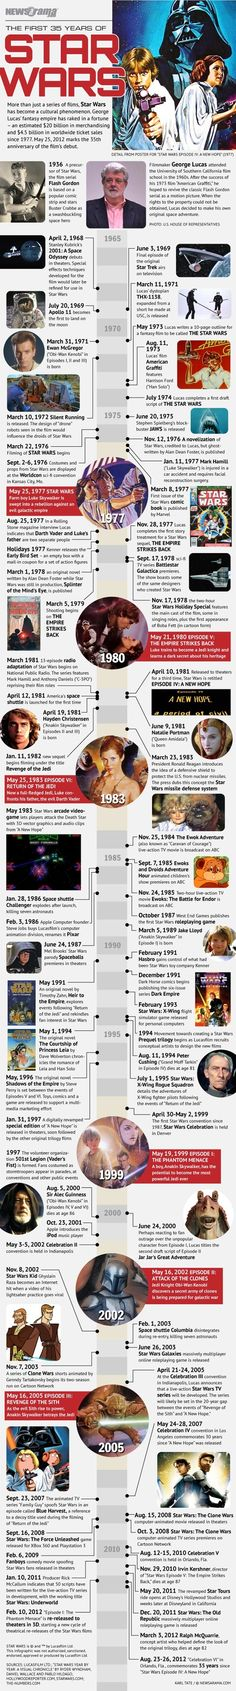 Infographic: The First 35 Years of Star Wars -- a timeline